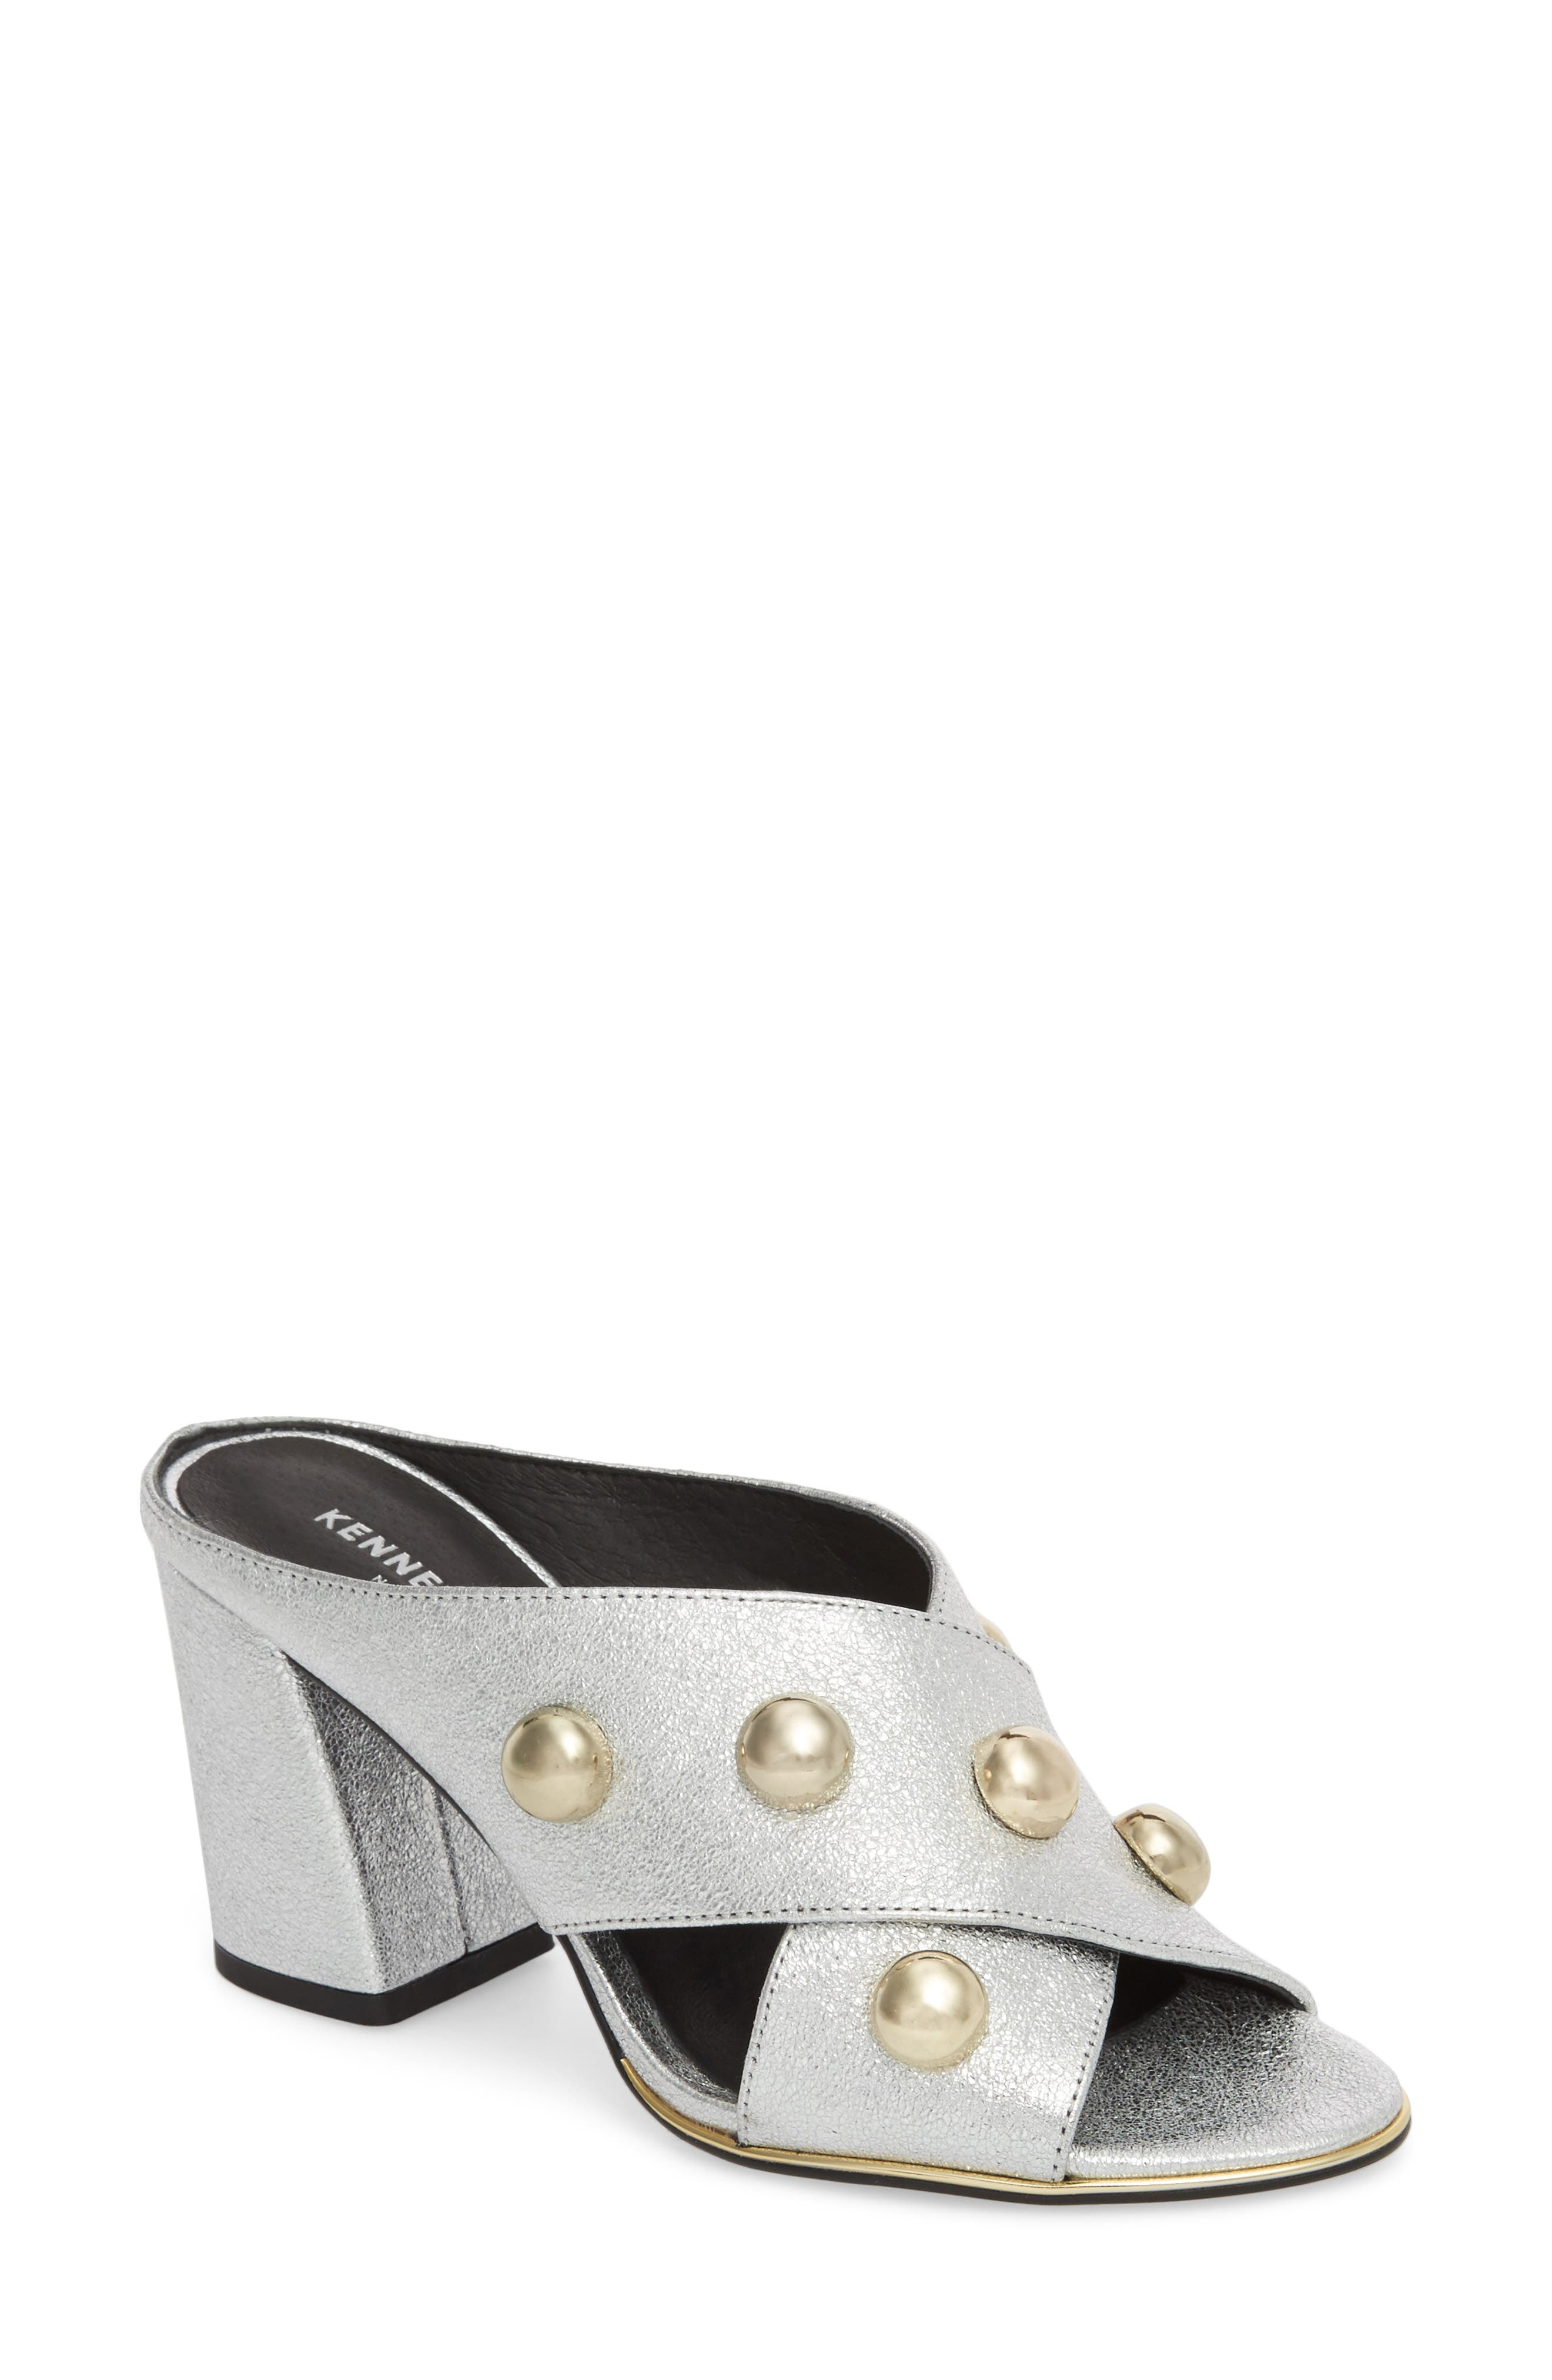 Lyra Sandal,                             Main thumbnail 1, color,                             Silver Leather